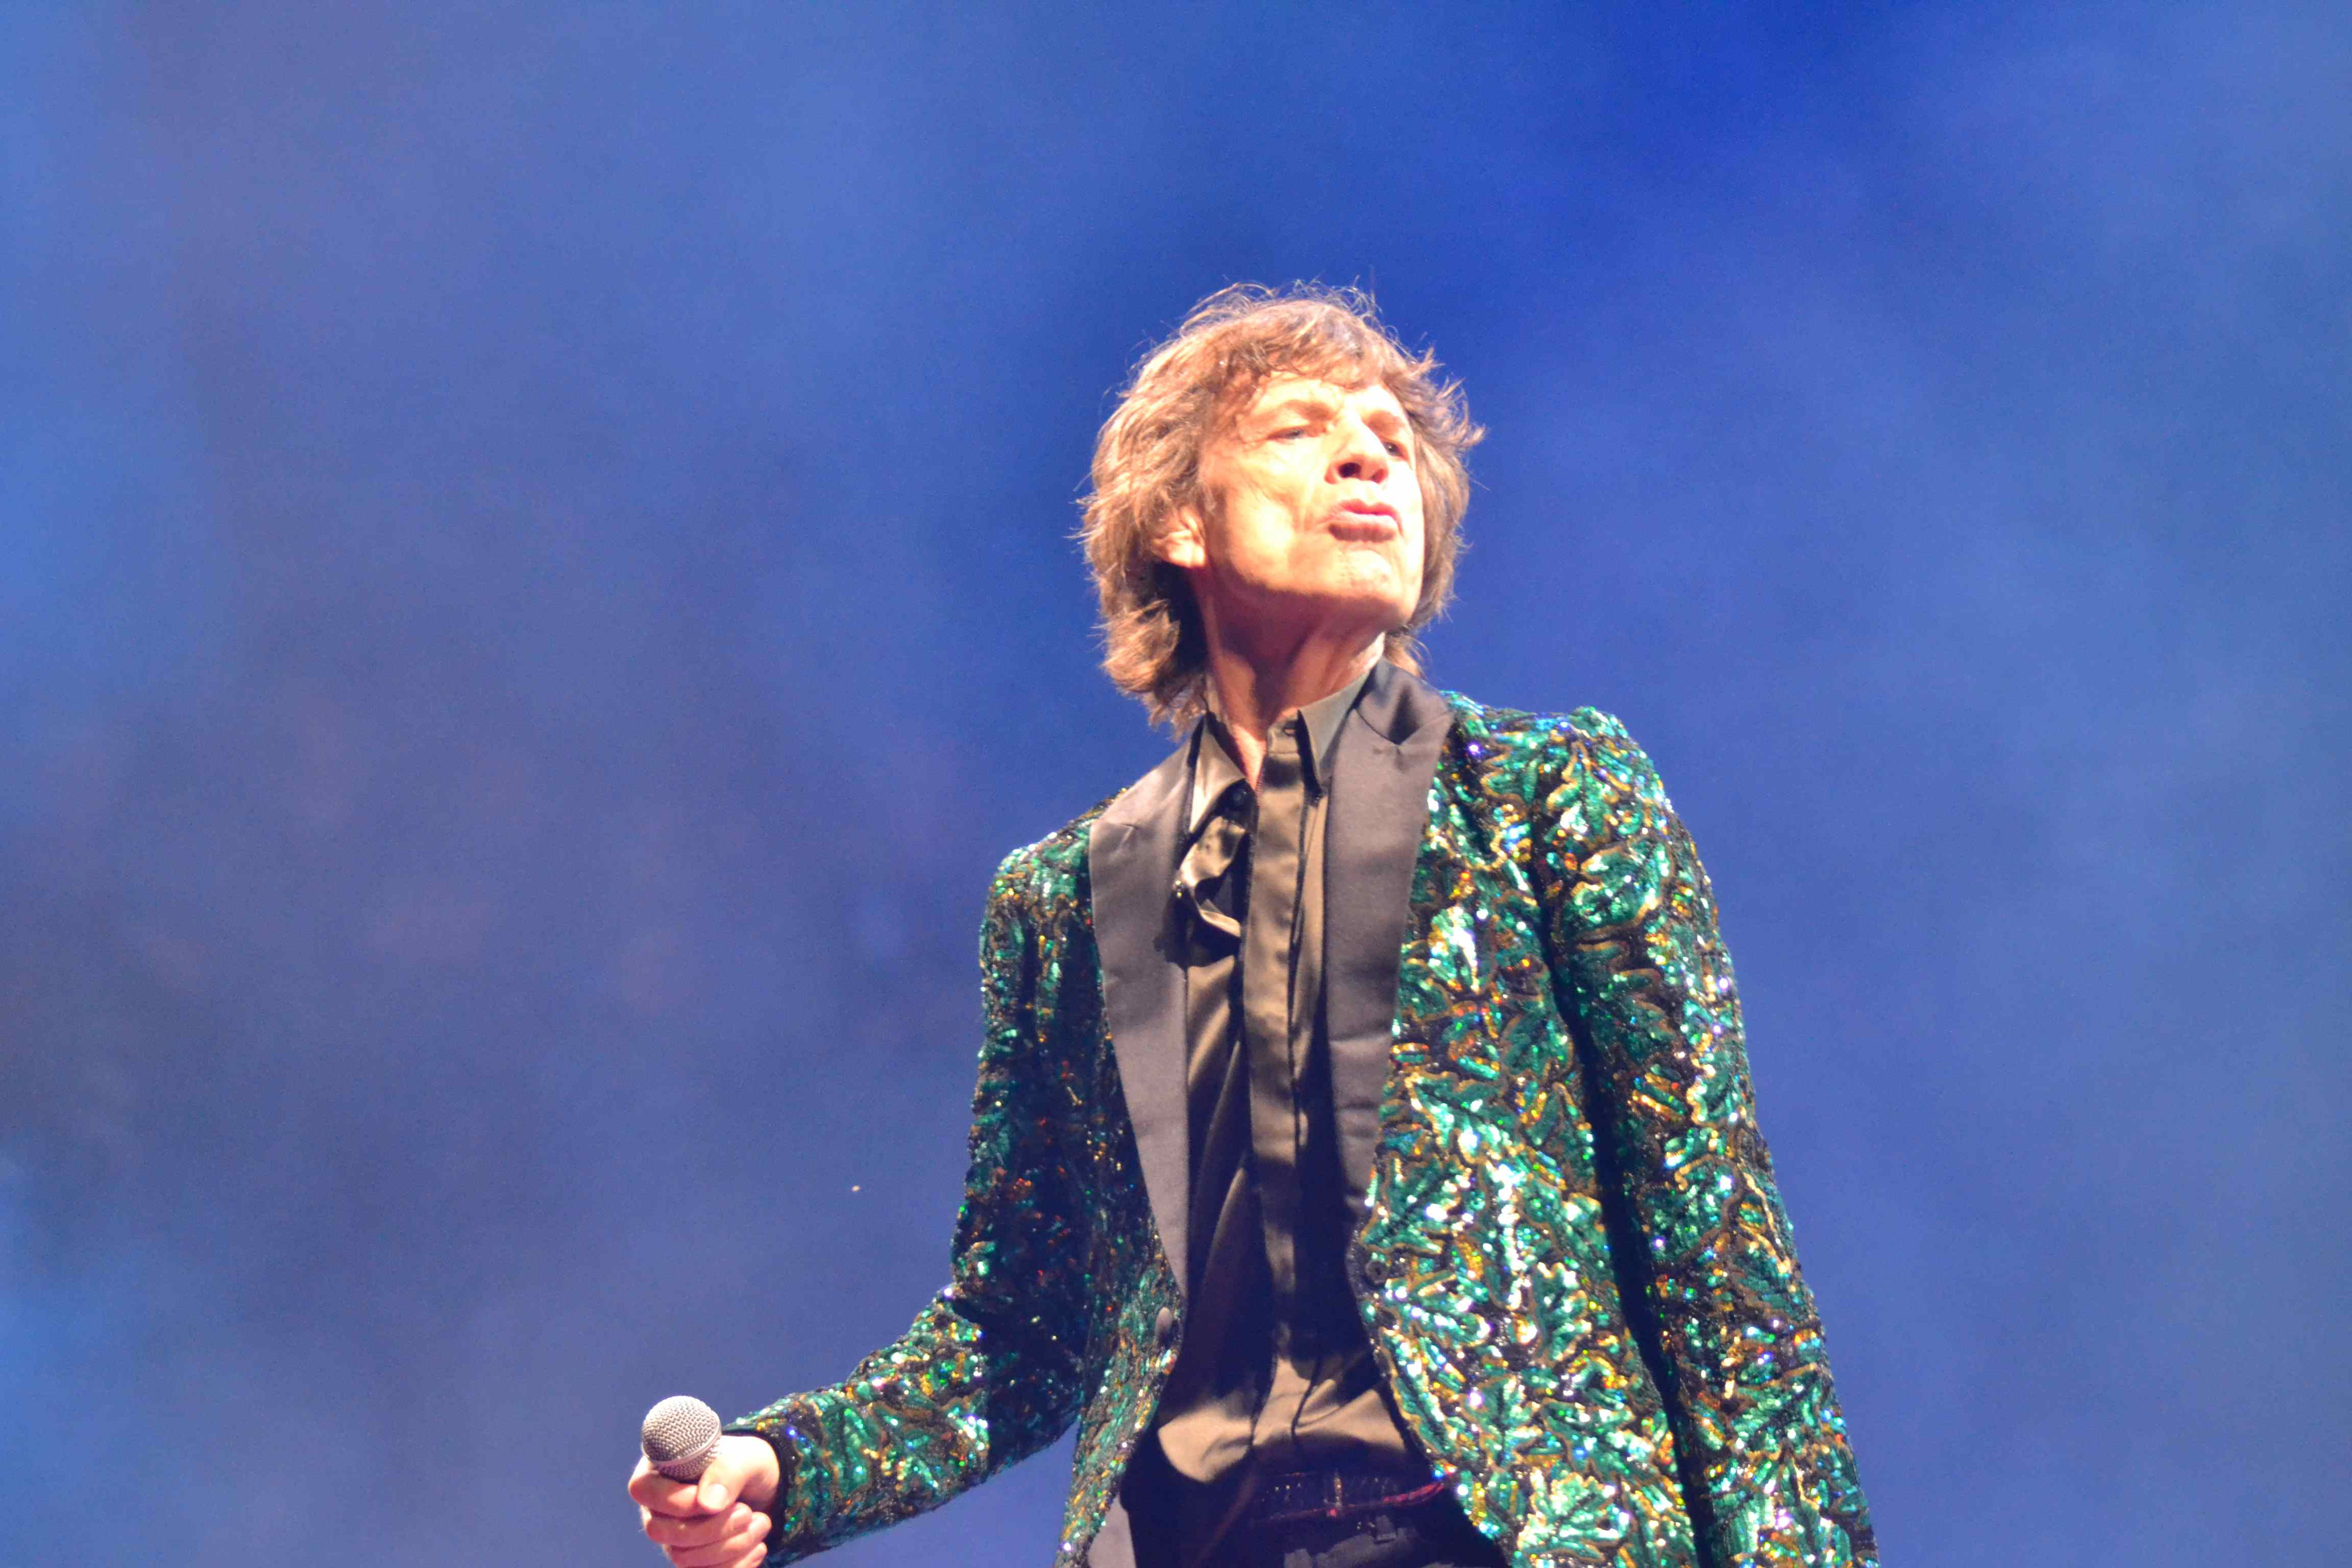 After four decades of being asked, the Stones finally agreed to play Glastonbury in 2013.